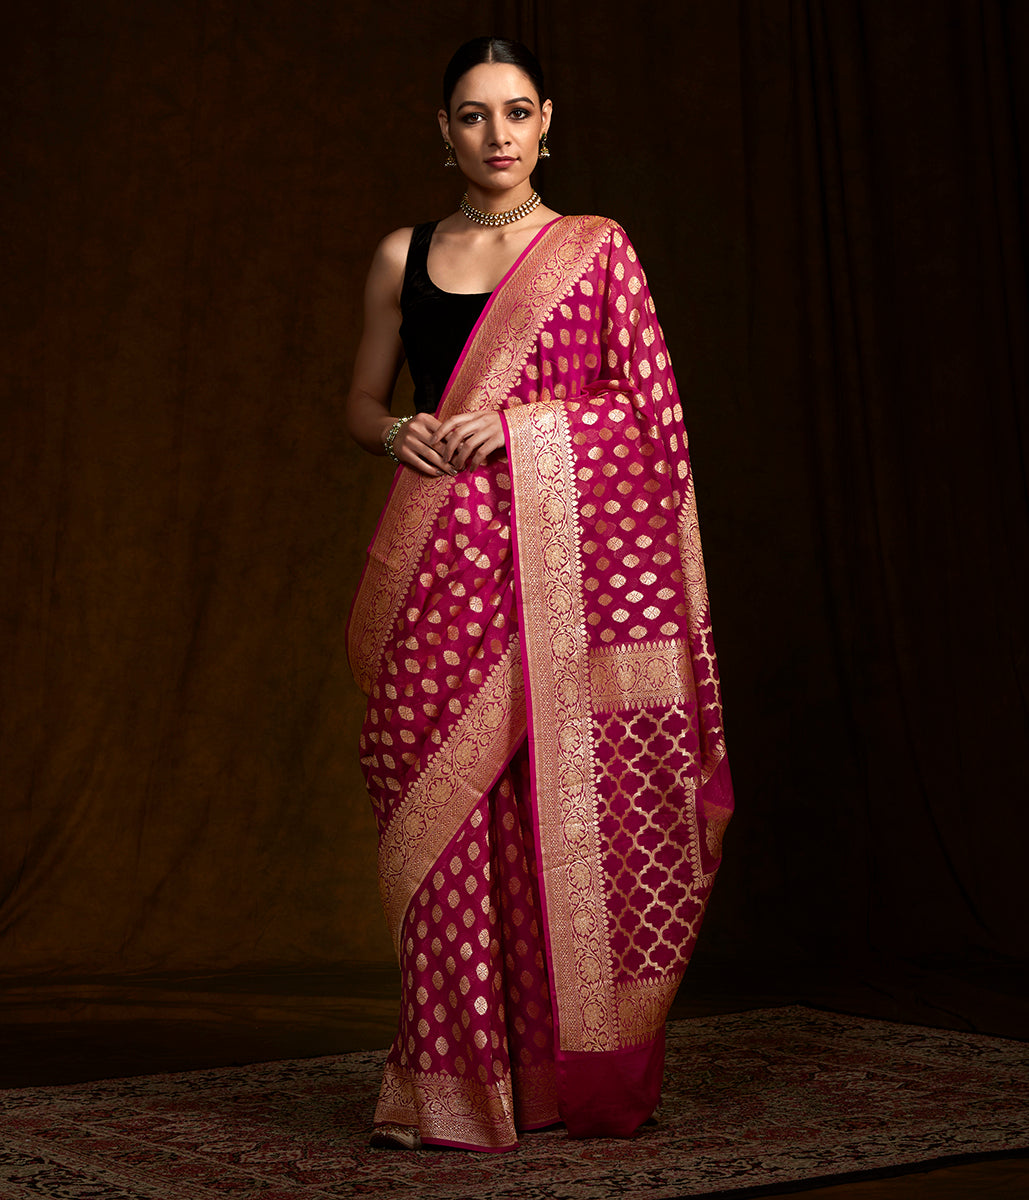 Handwoven banarasi georgette saree in dark pink with gold zari motifs